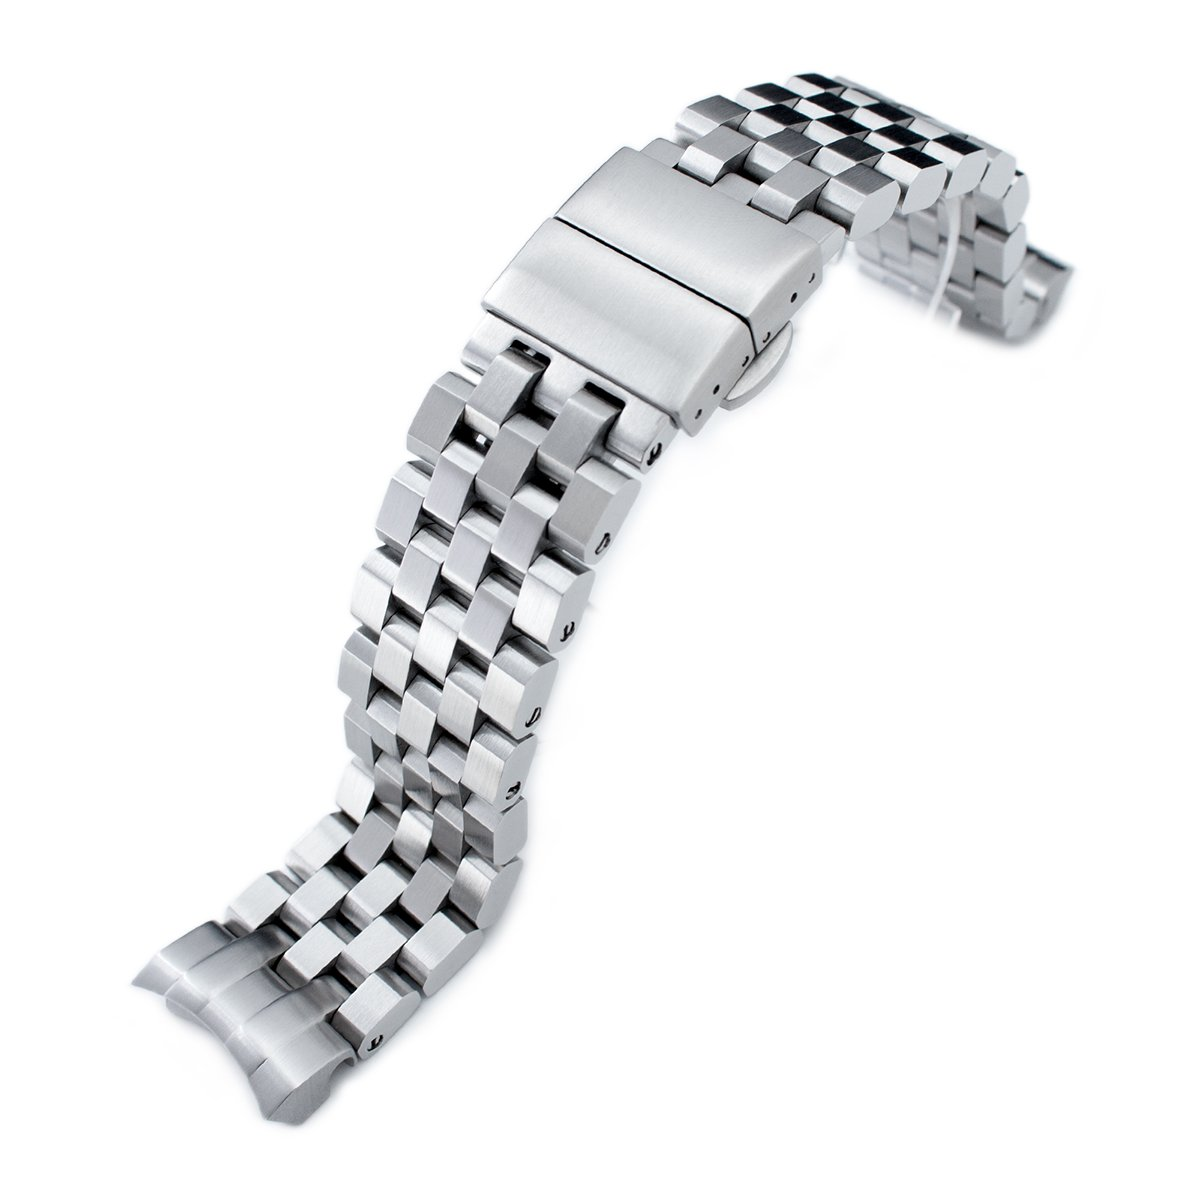 Super Engineer II watch band forSEIKO Sumo SBDC001 SBDC003 SBDC031 SBDC033, Deployant